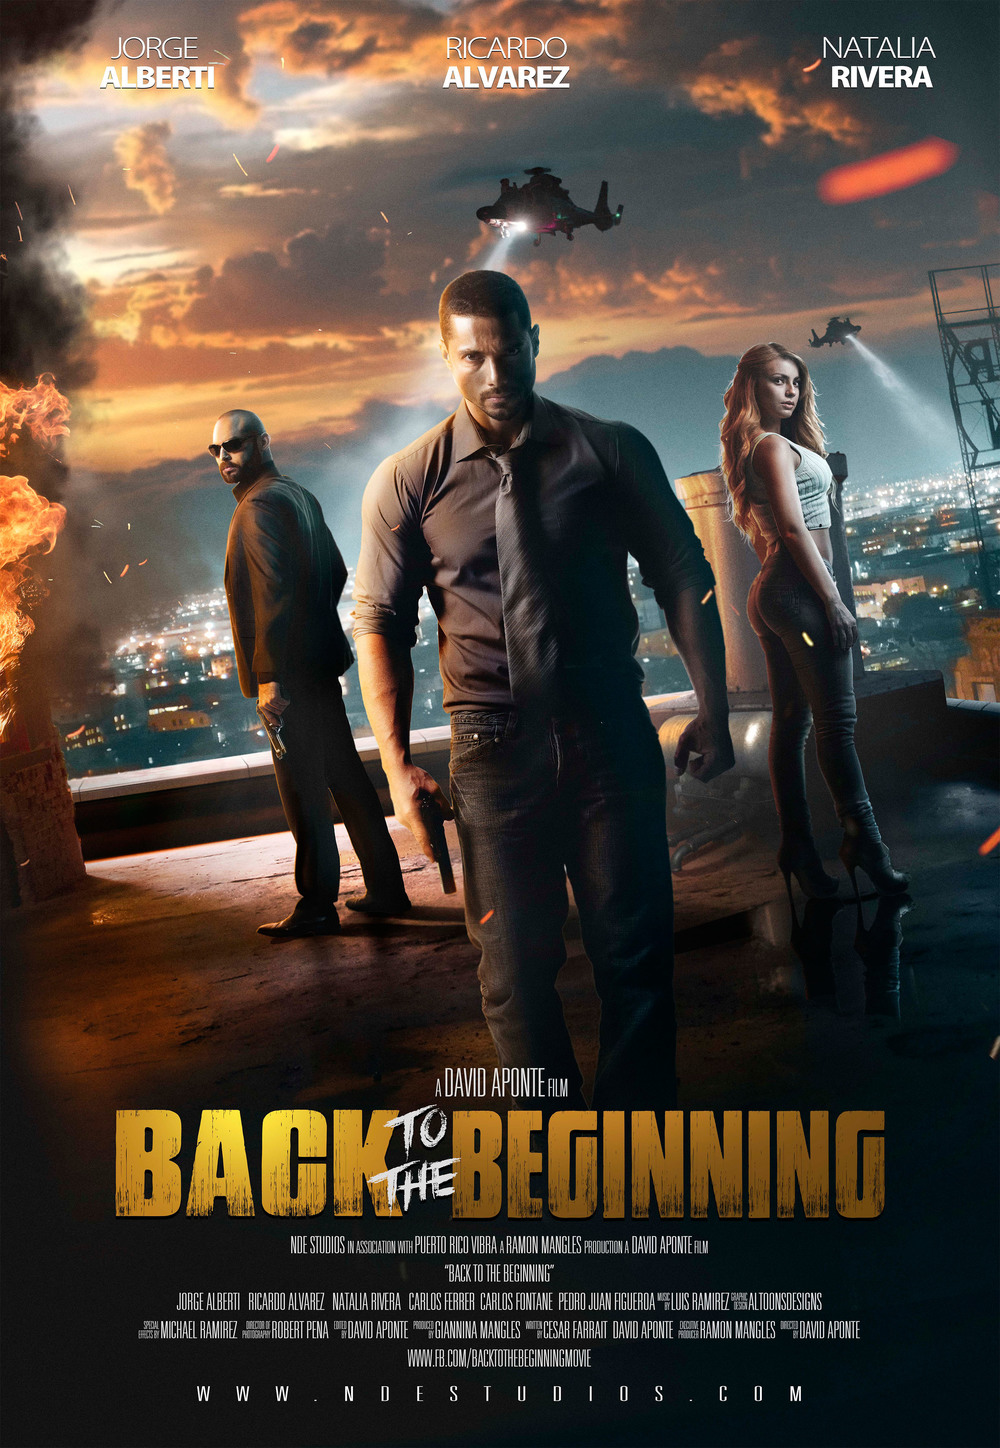 1_0007_Back to the Beginning Poster Ver3 All Star Cast Official Rotado Int.jpg